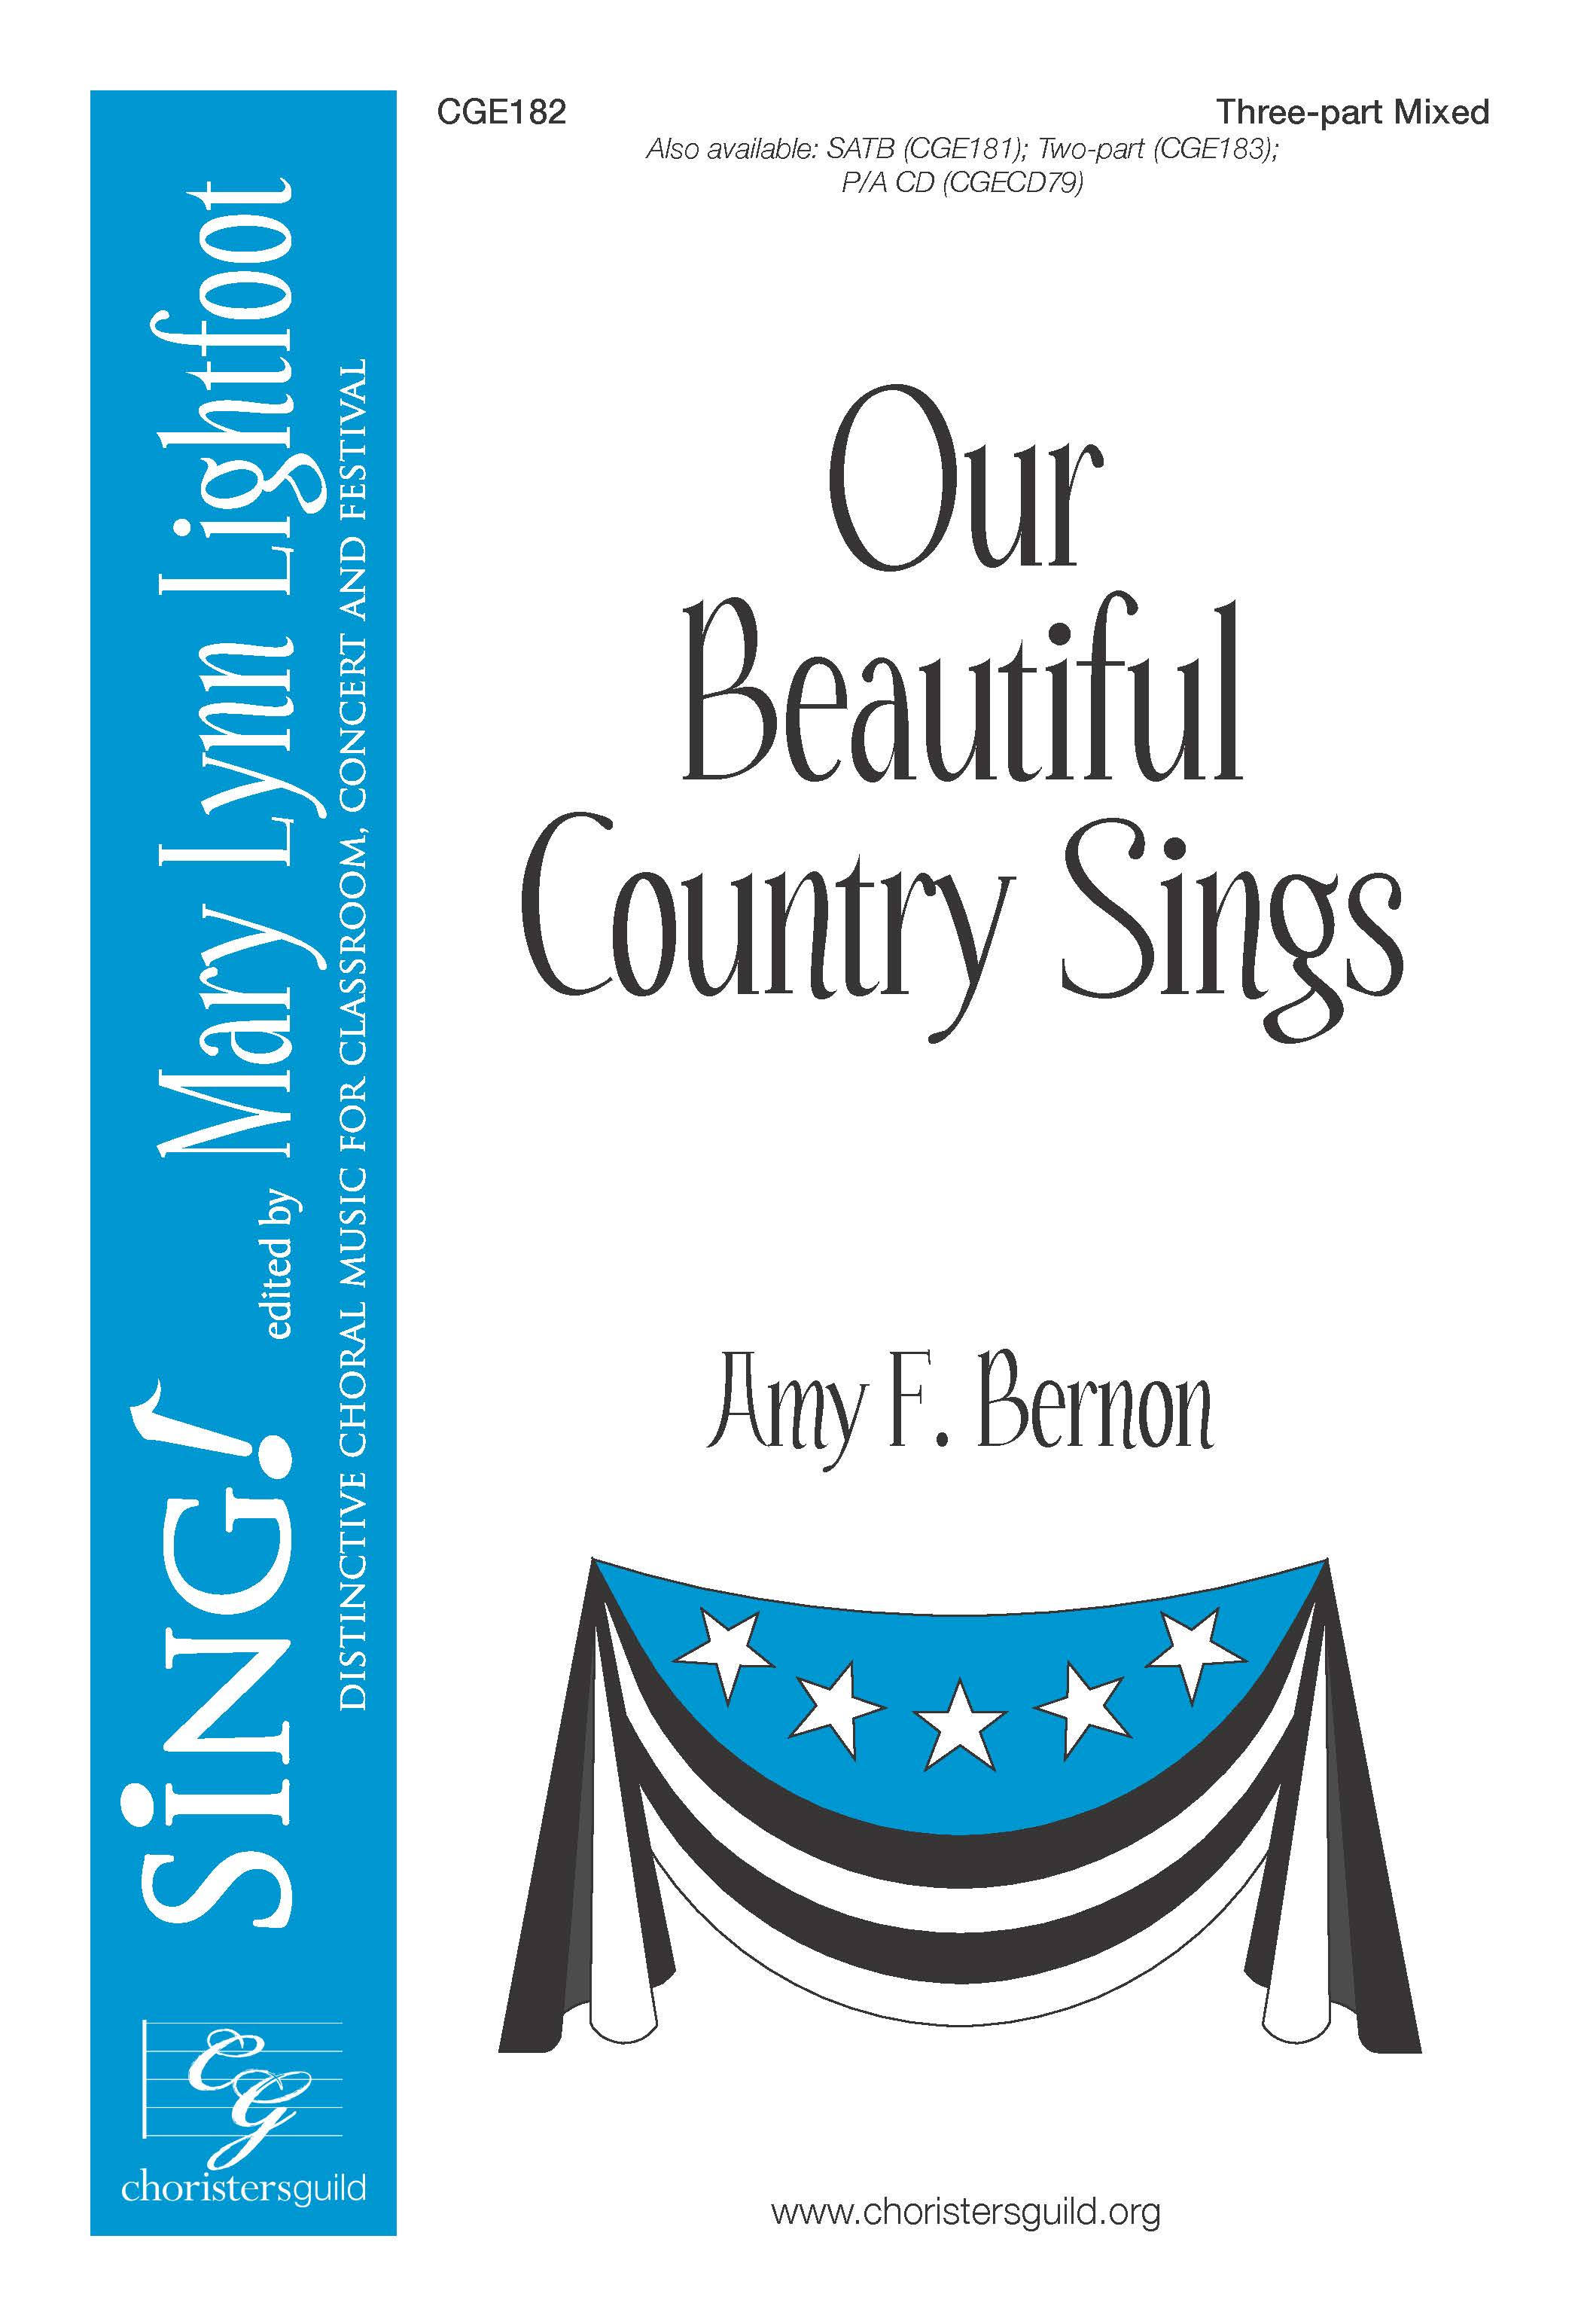 Our Beautiful Country Sings Three-part Mixed